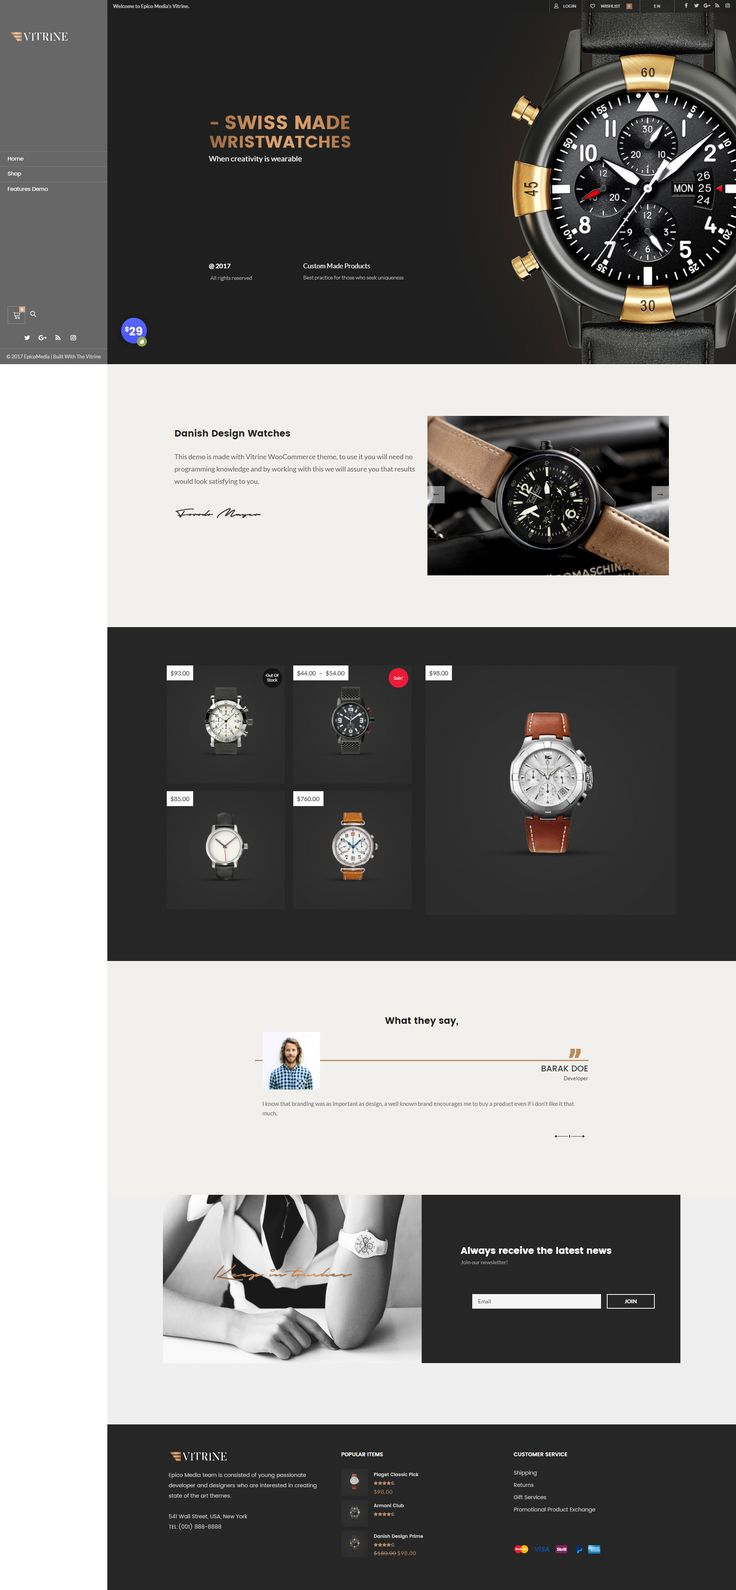 #wordpress #woocommerce #website #theme #design #classic